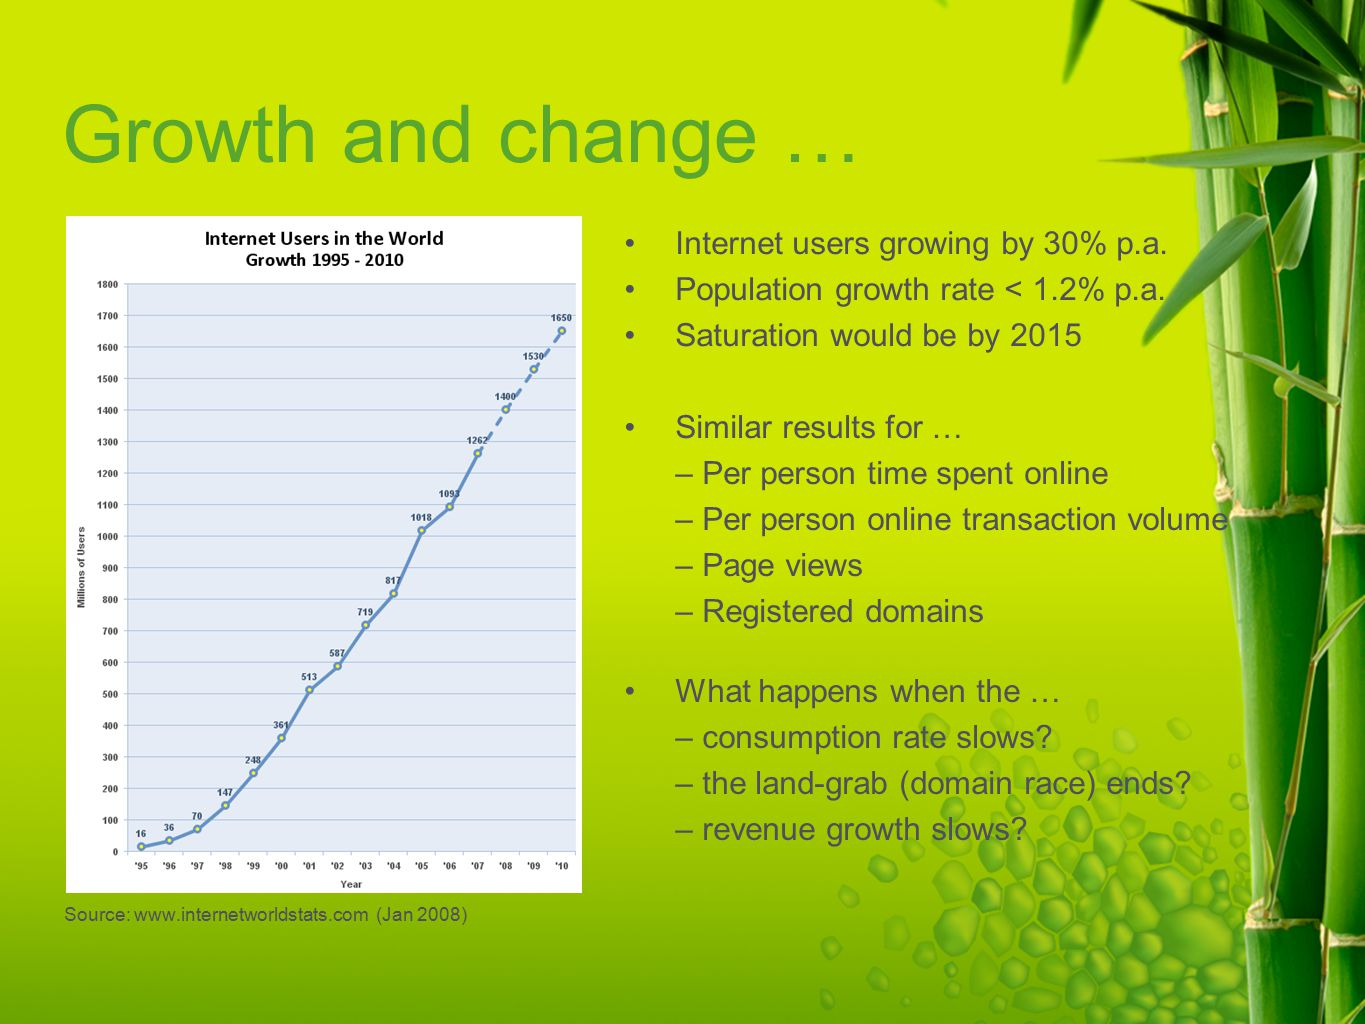 Growth and change … Source: www.internetworldstats.com (Jan 2008) Internet users growing by 30% p.a.